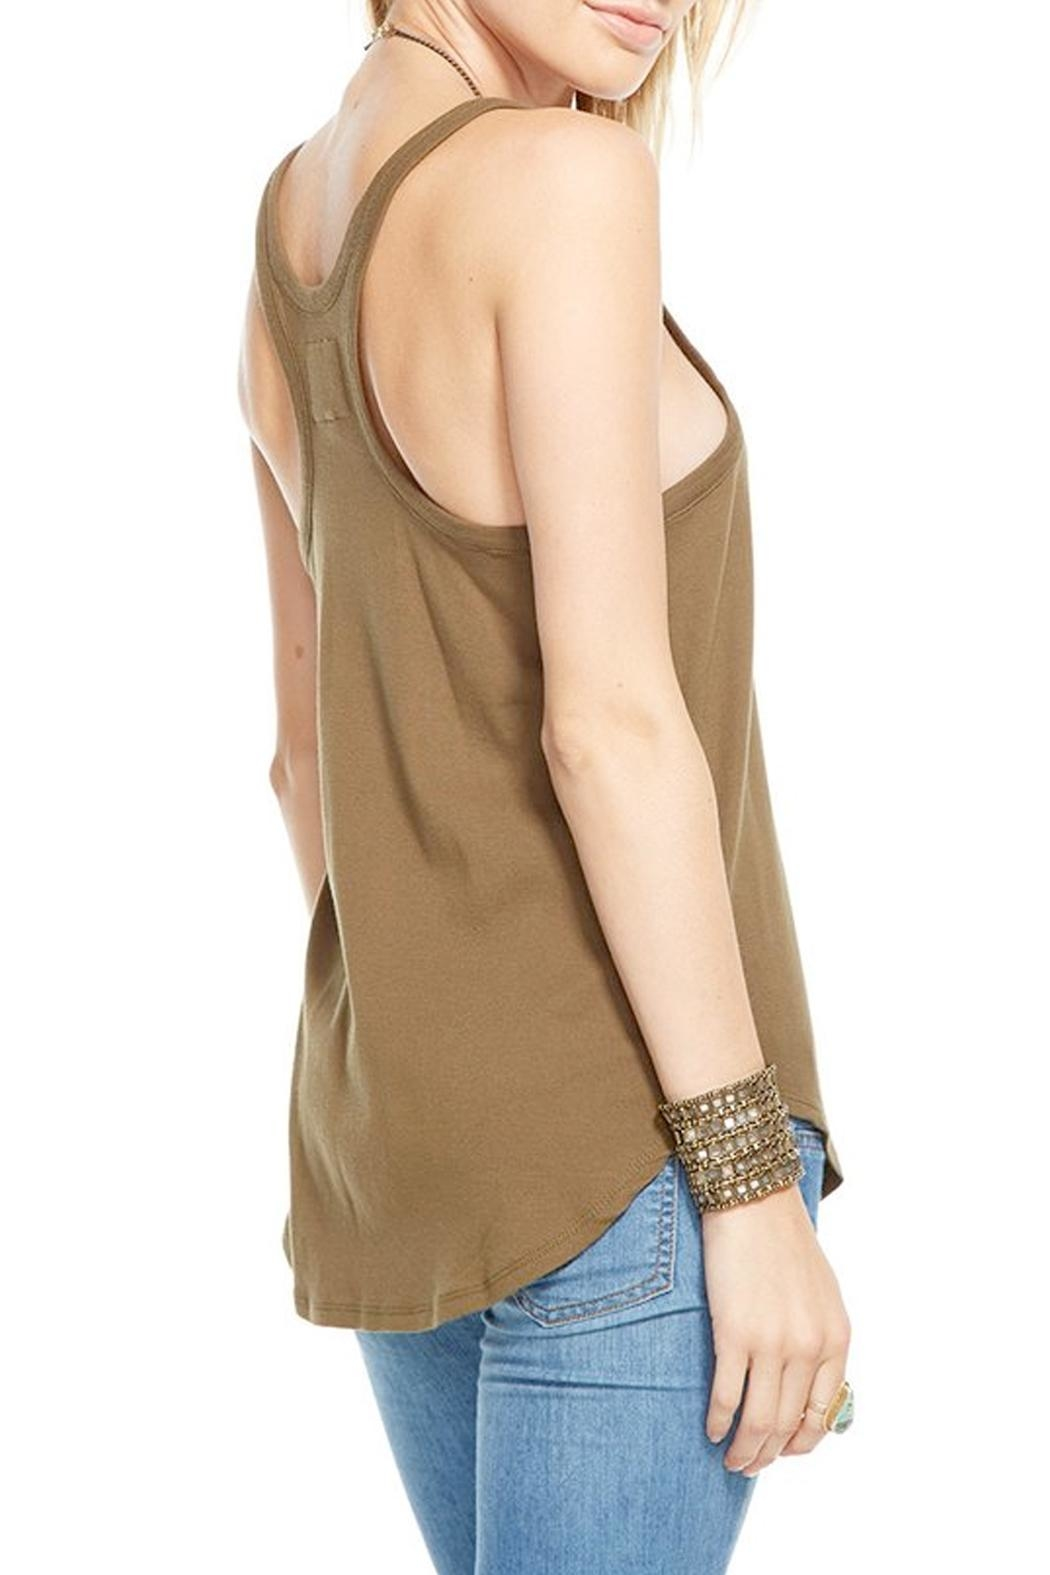 Chaser Moss Racerback Tank Top - Front Full Image